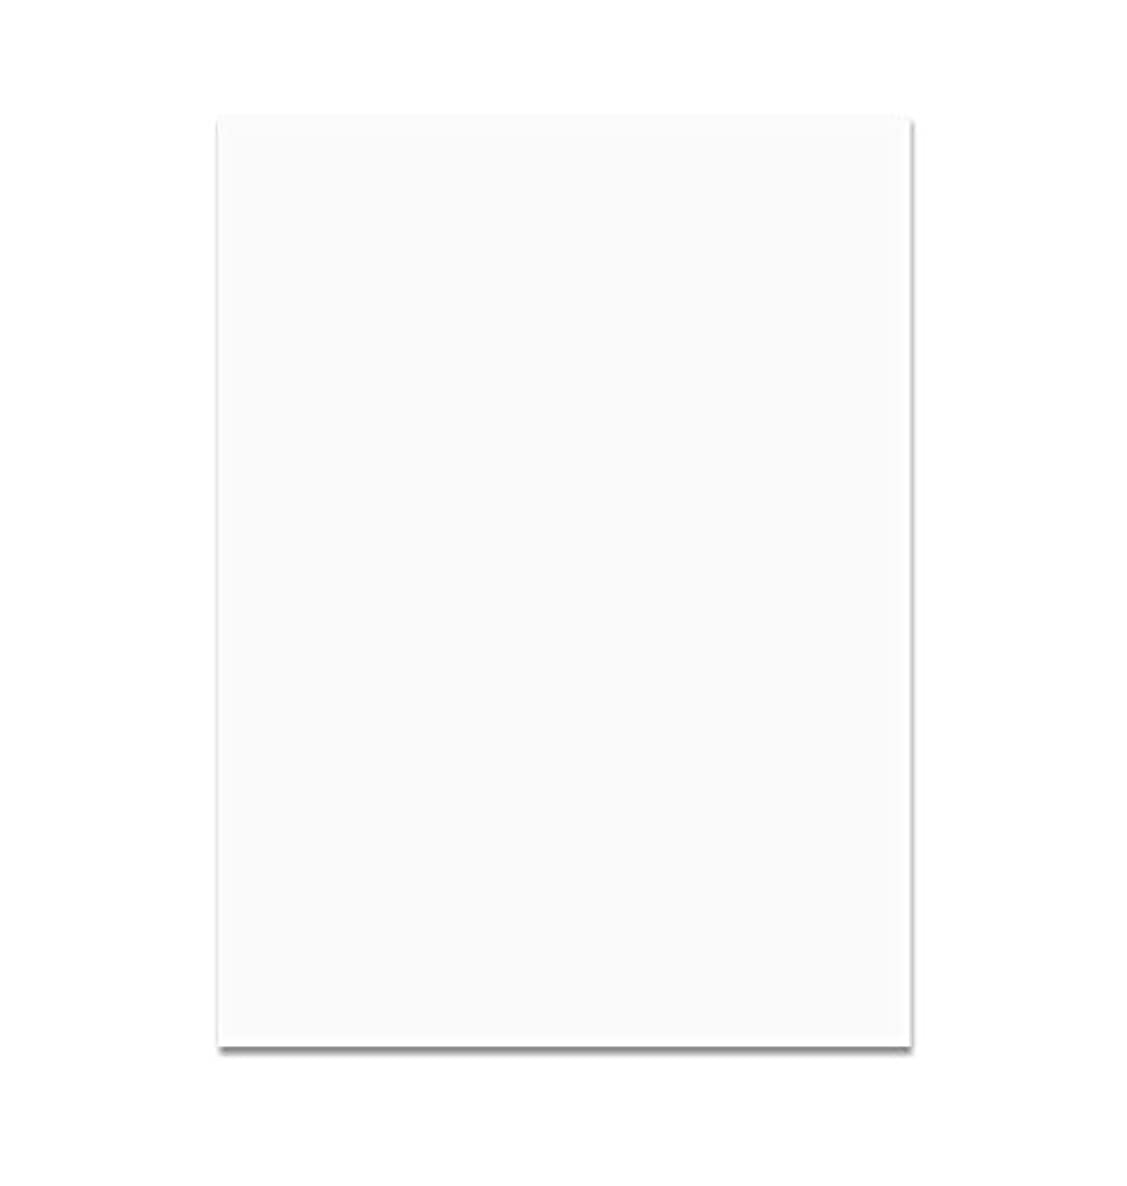 Sax Heavy-Weight Art Paper - 100% Sulphite, 130 gsm, 9 X 12 Inches, White, Pack of 50